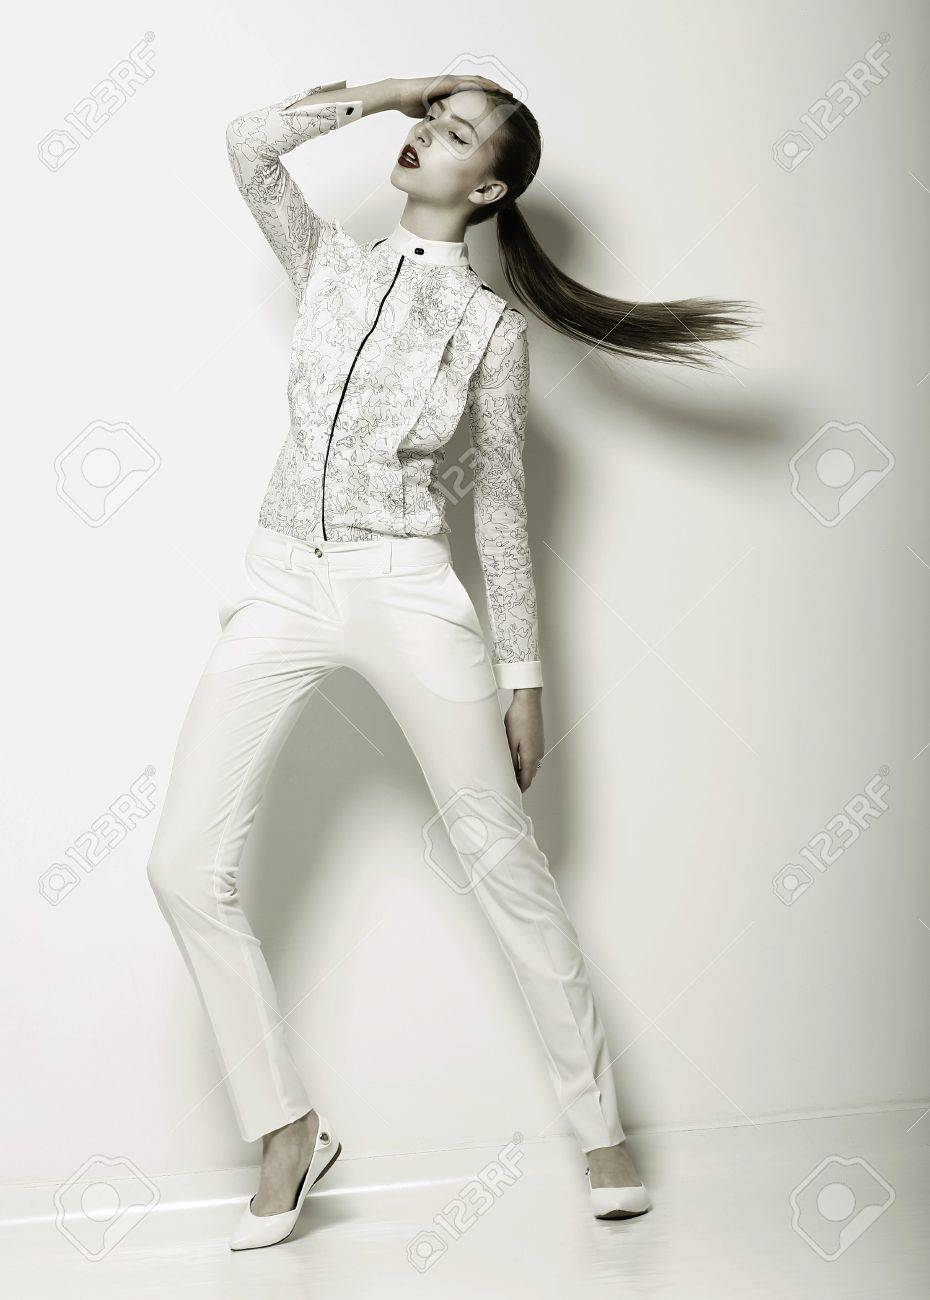 Expression. Futuristic Woman in White Trousers. Trend. Stock Photo - 19028381